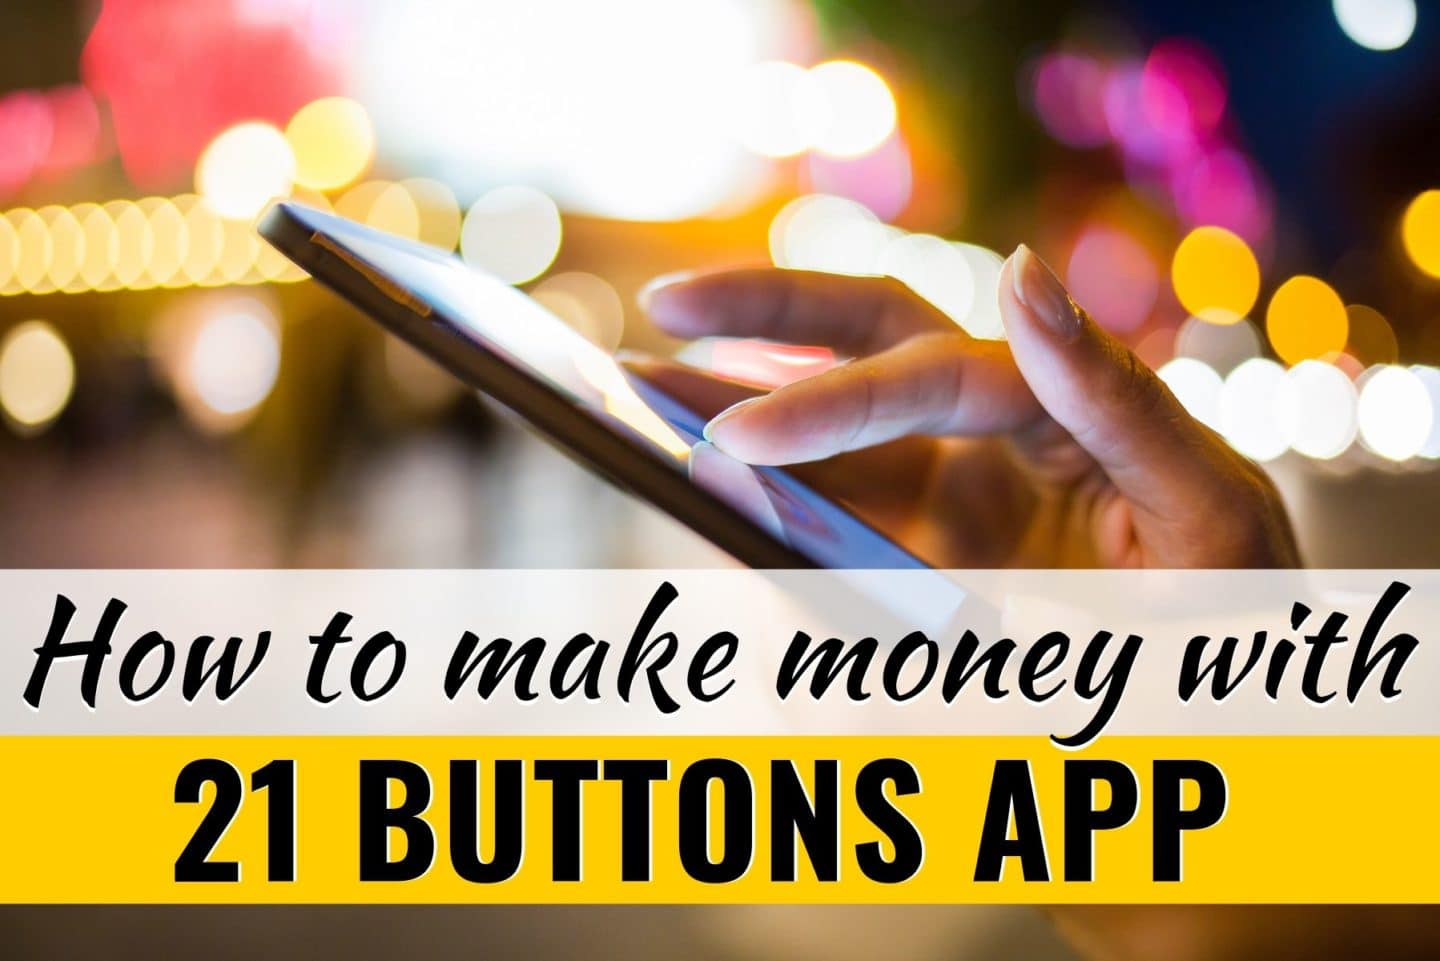 What is 21 Buttons App and How To Use It to Make Money – Everything You Need to Know